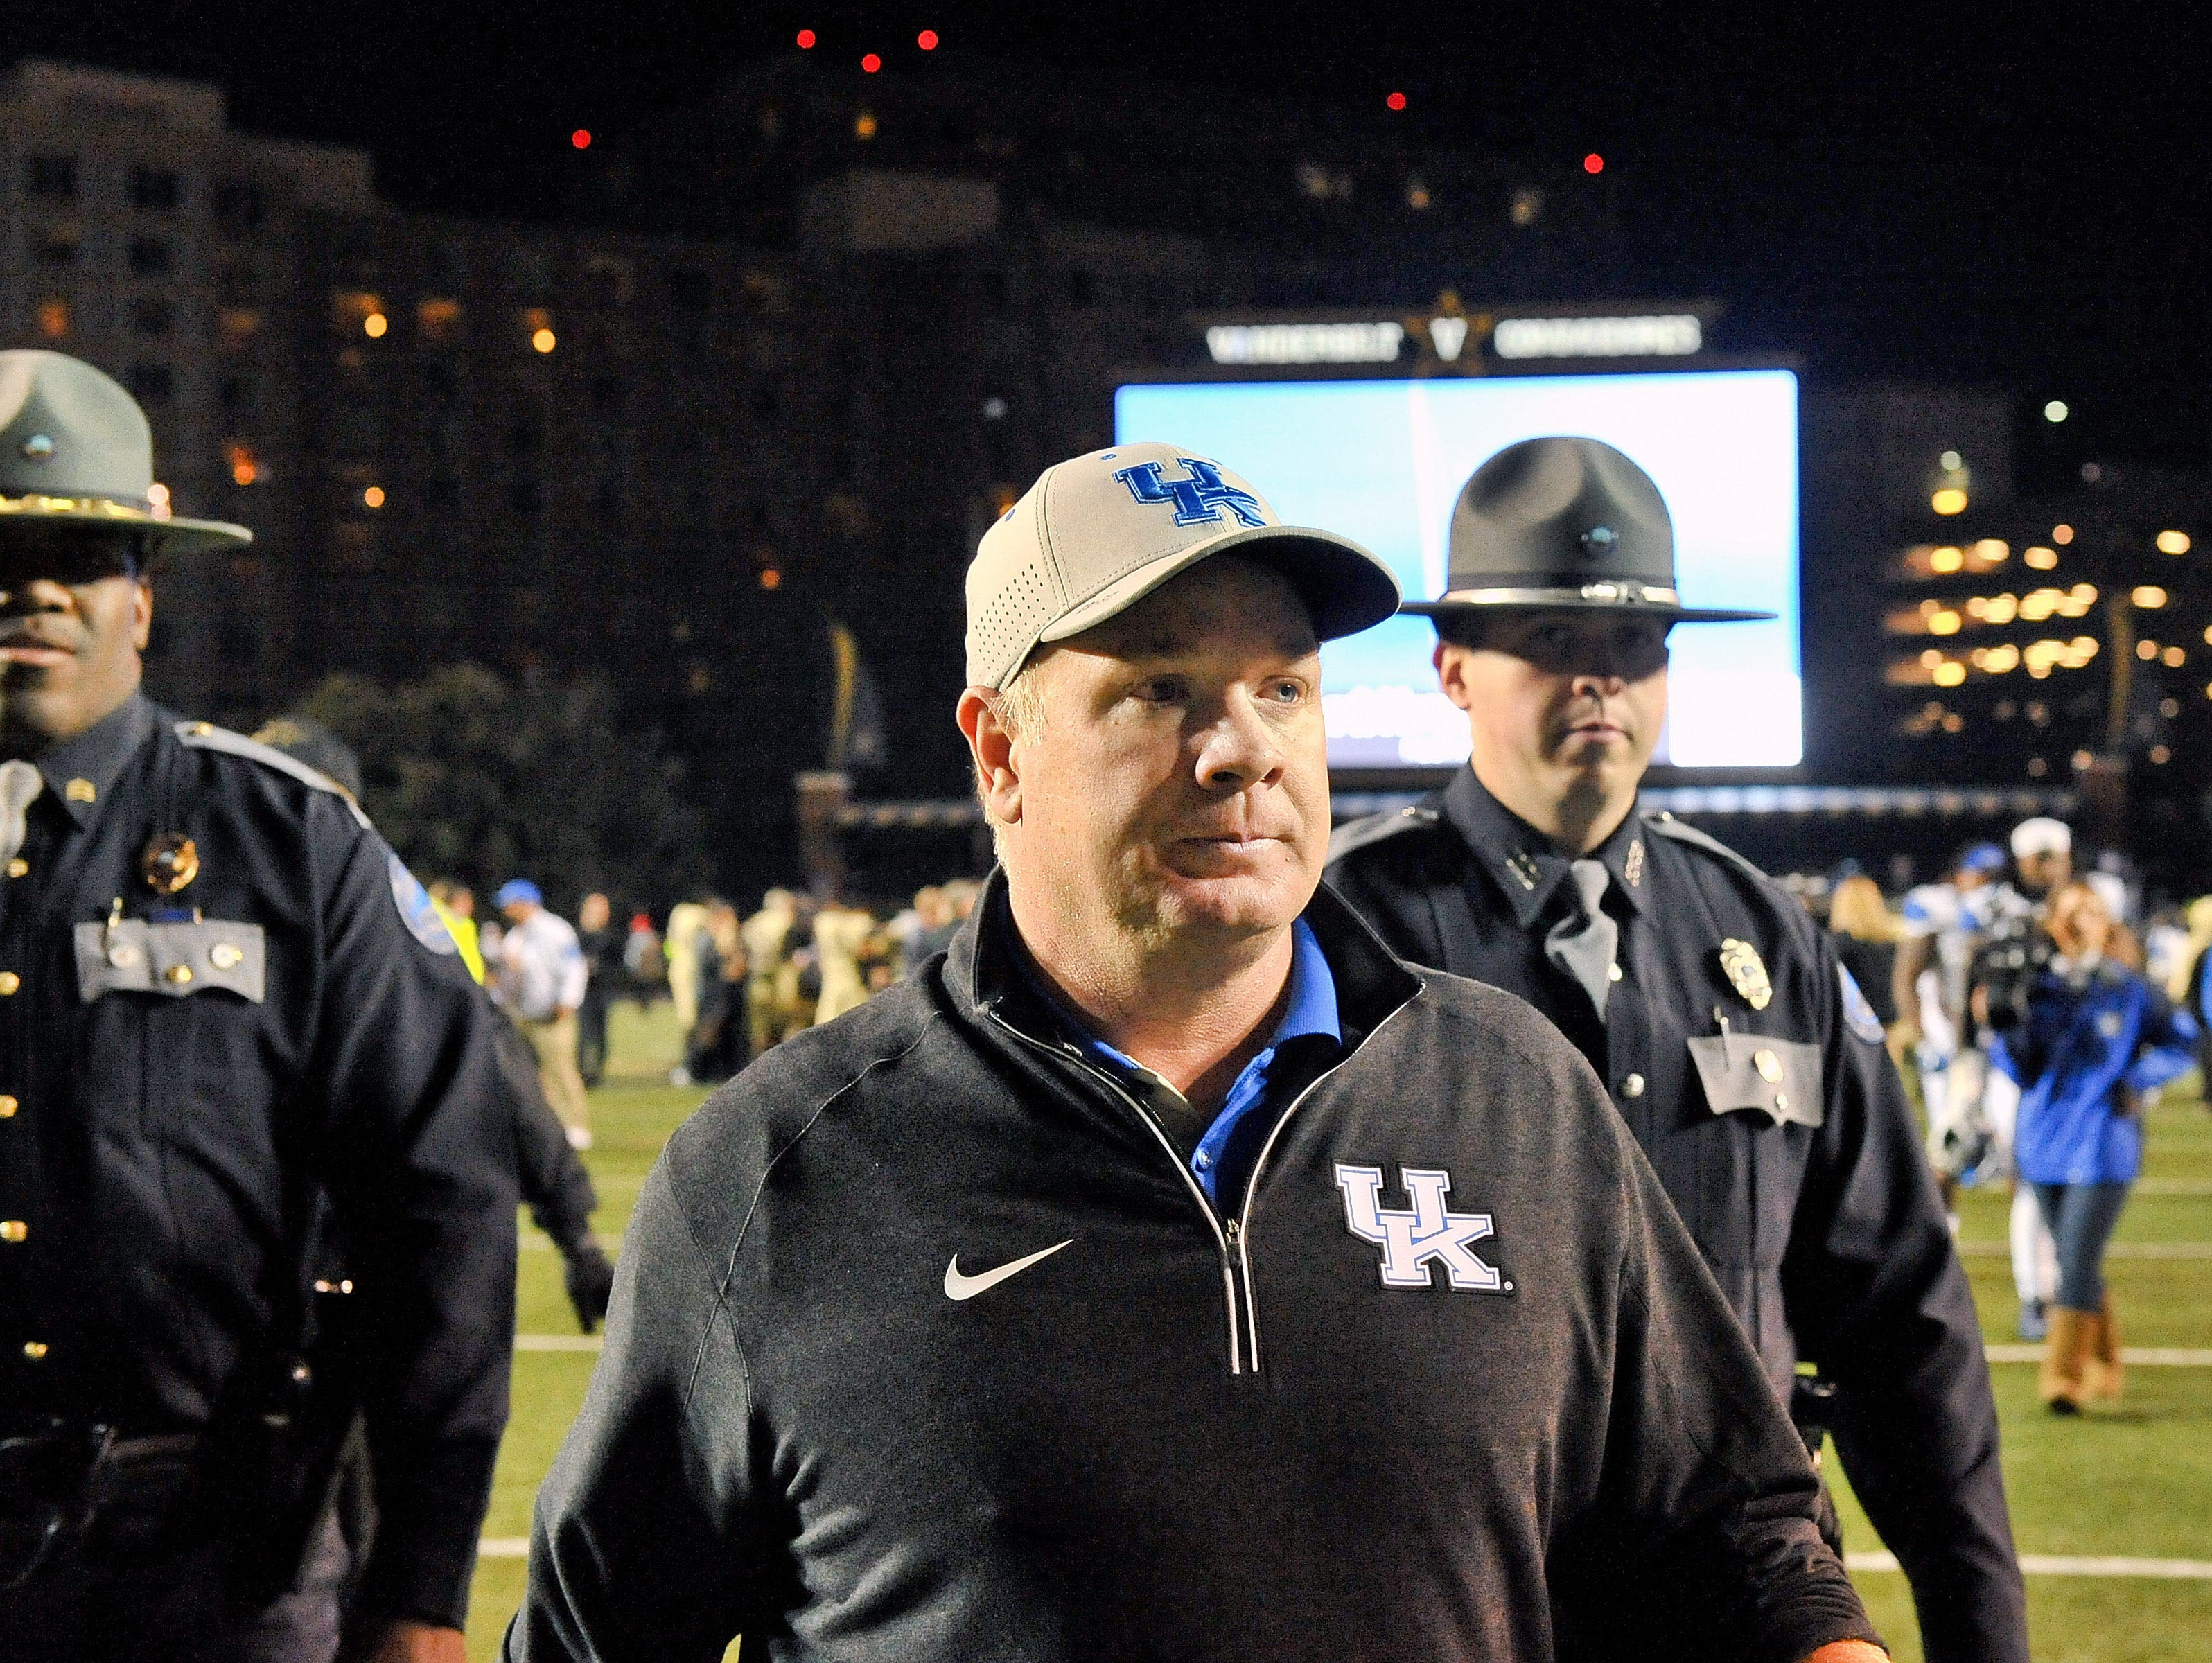 Nov 14, 2015; Nashville, TN, USA; Kentucky Wildcats head coach Mark Stoops walks off the field after his team is defeated by the Vanderbilt Commodores during the second half at Vanderbilt Stadium. Vanderbilt won 21-17.